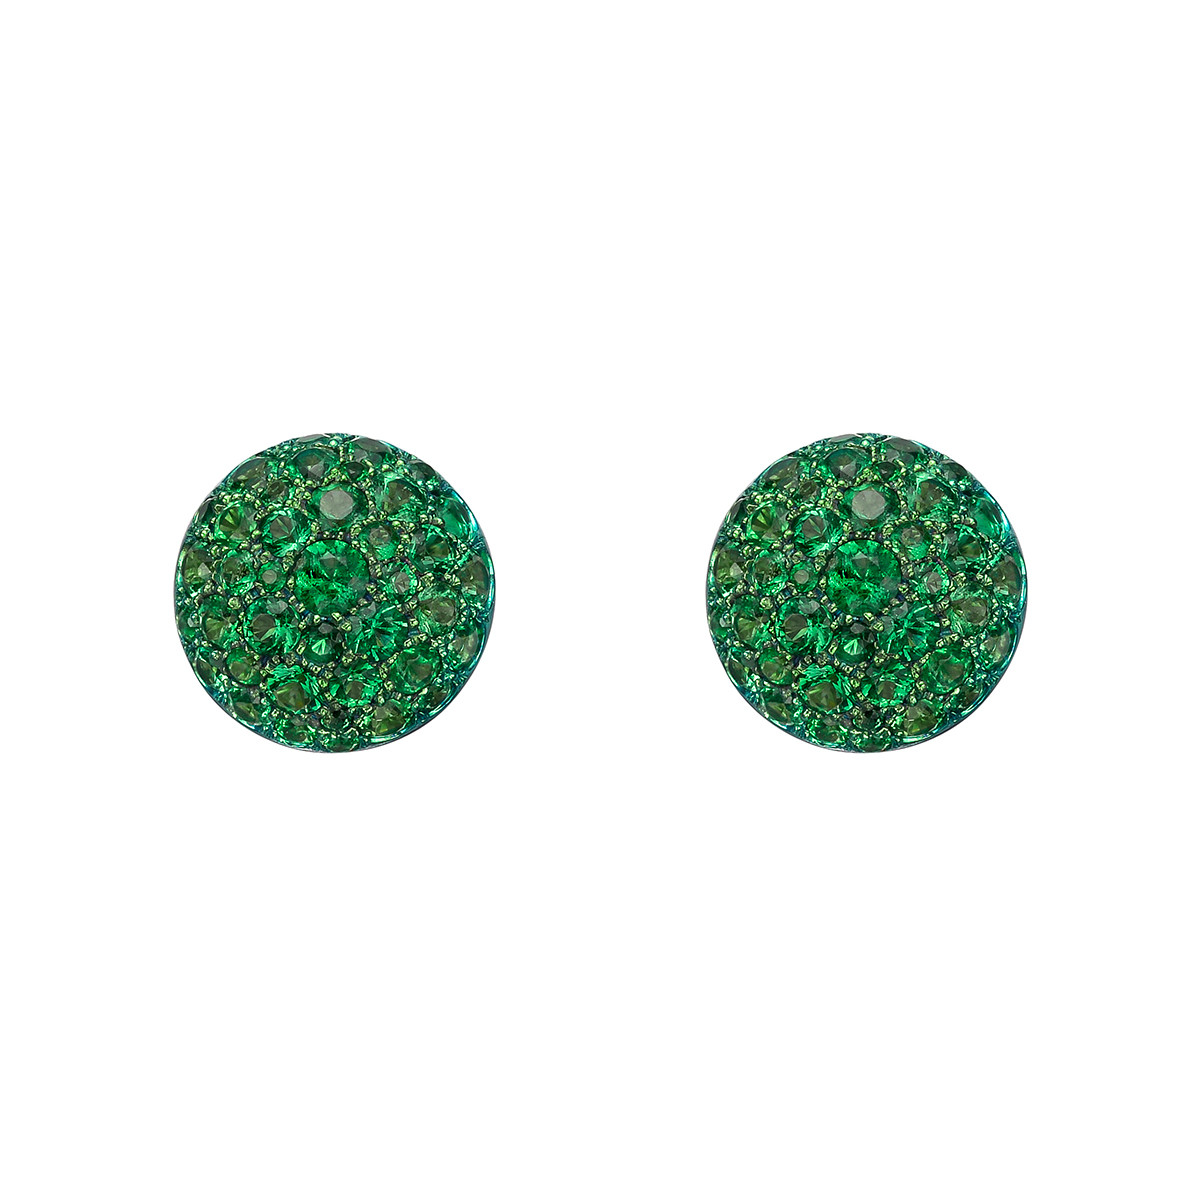 Pavé Emerald Domed Stud Earrings